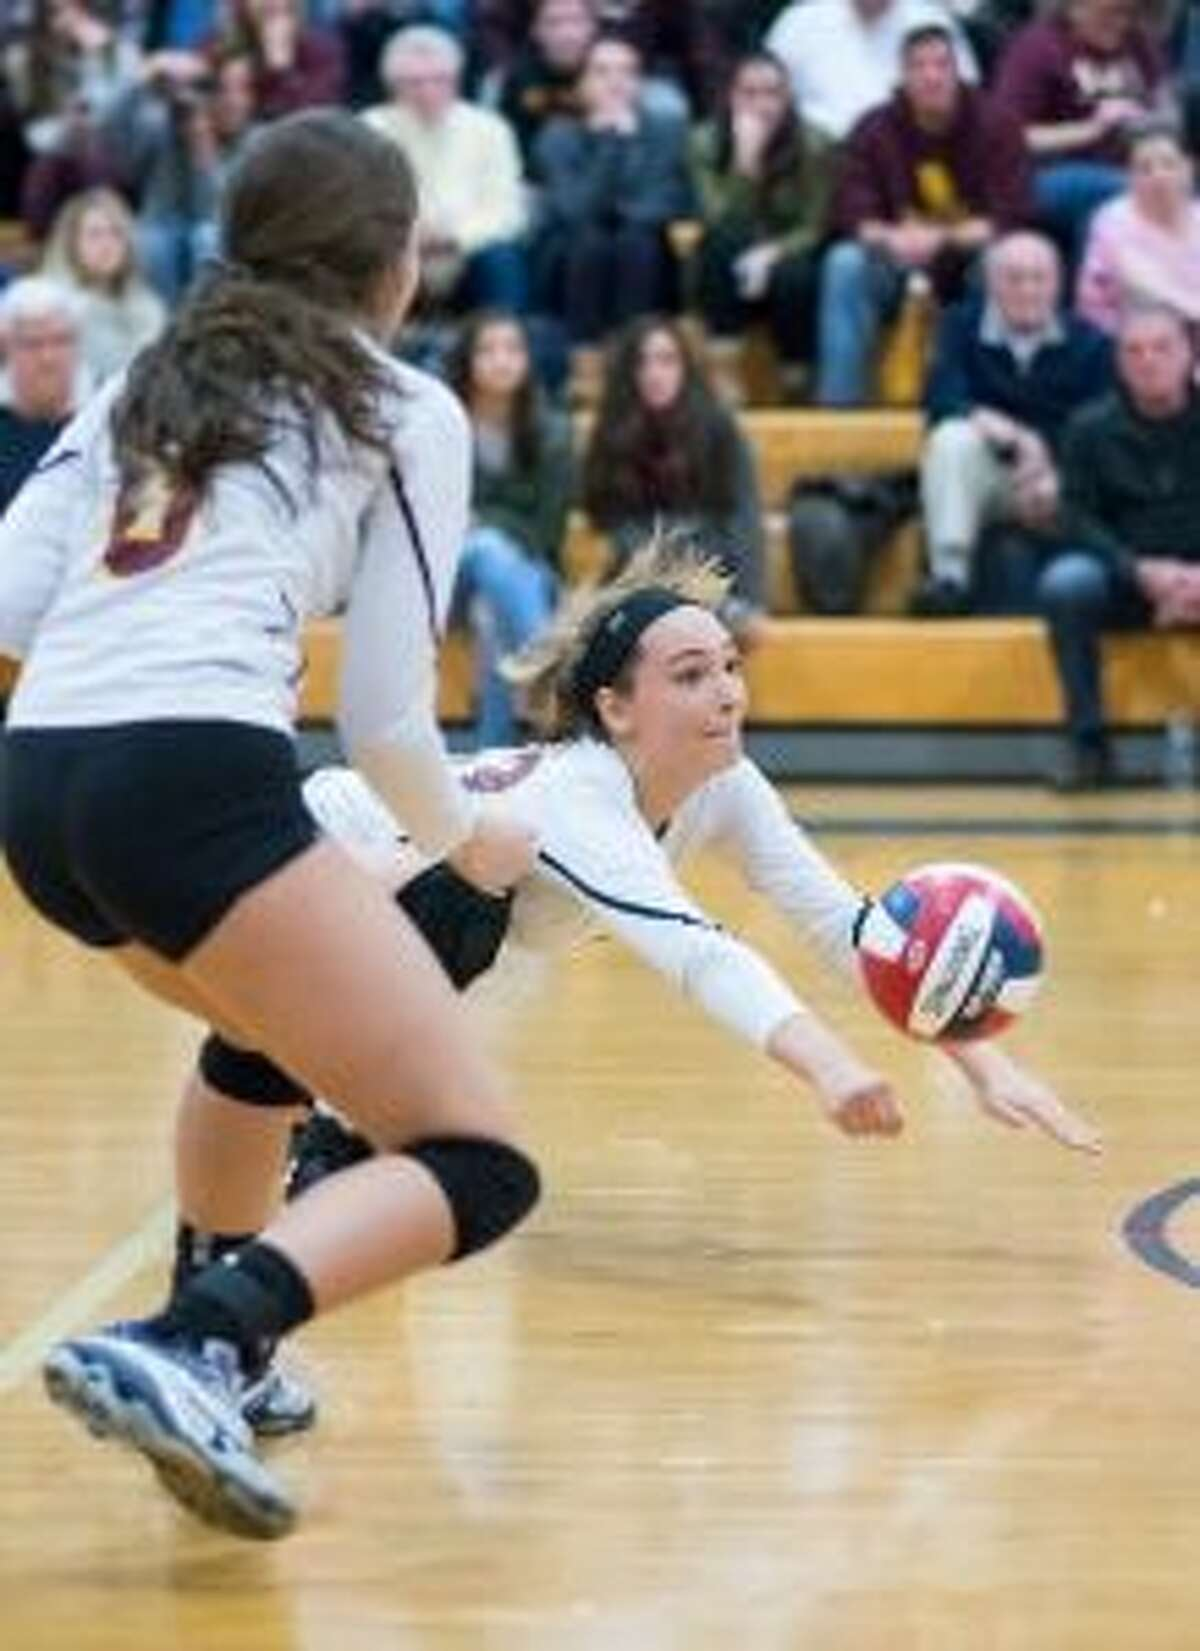 Bridget Fatse gets under the ball to keep the point alive.